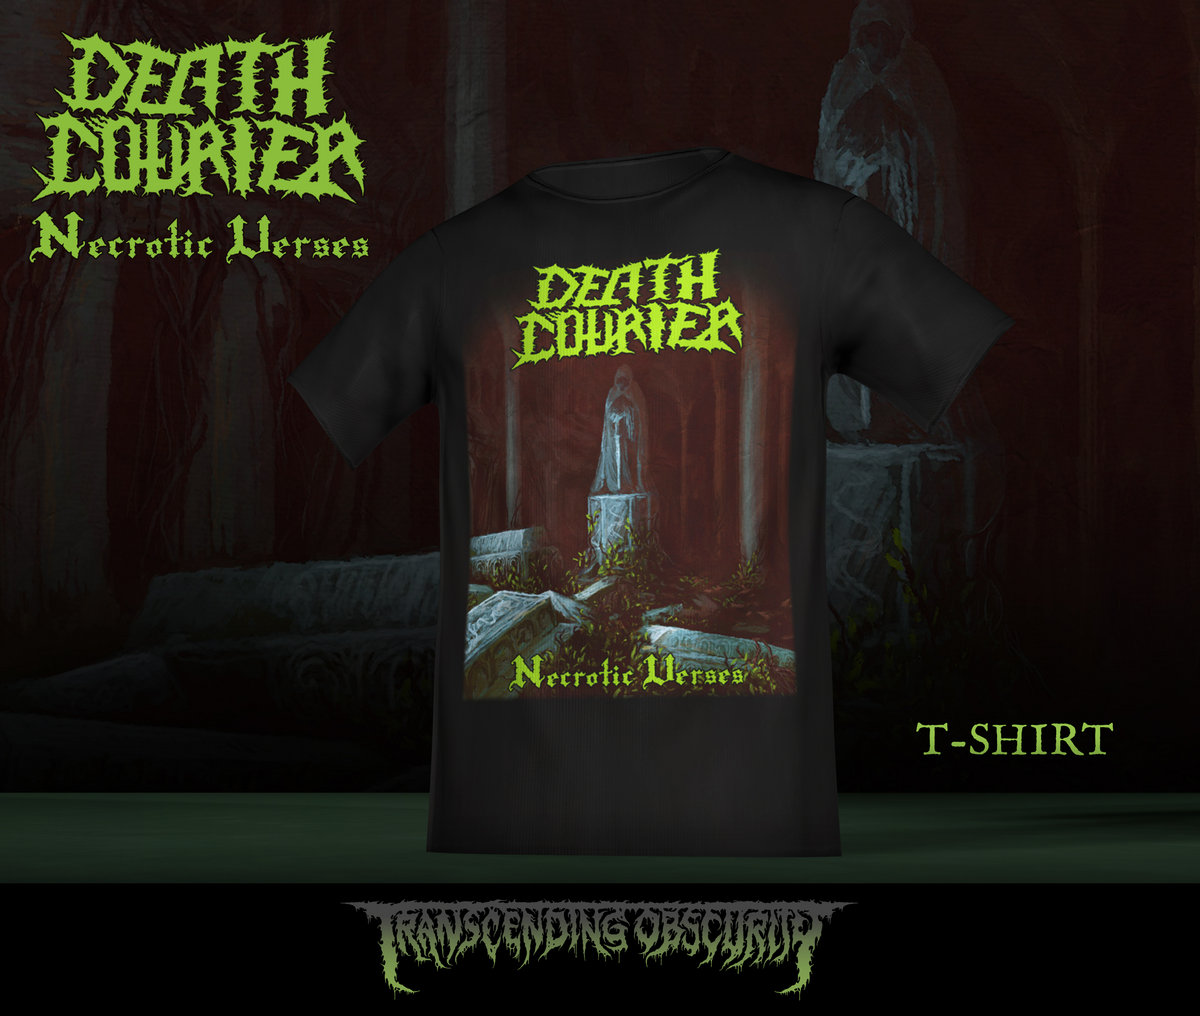 DEATH COURIER Album Artwork T-shirt (Limited to 30 nos.)